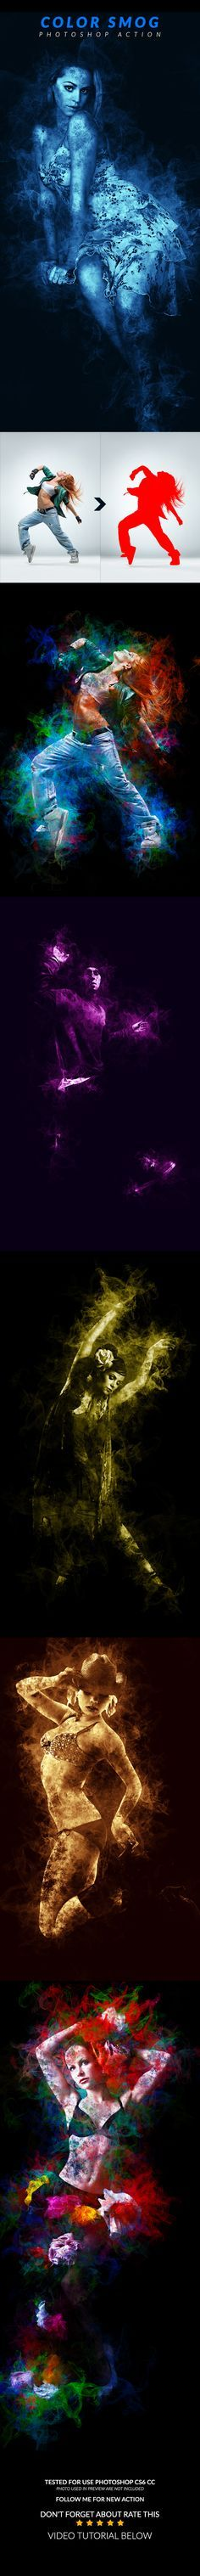 Color Smog Photoshop Action Download here…